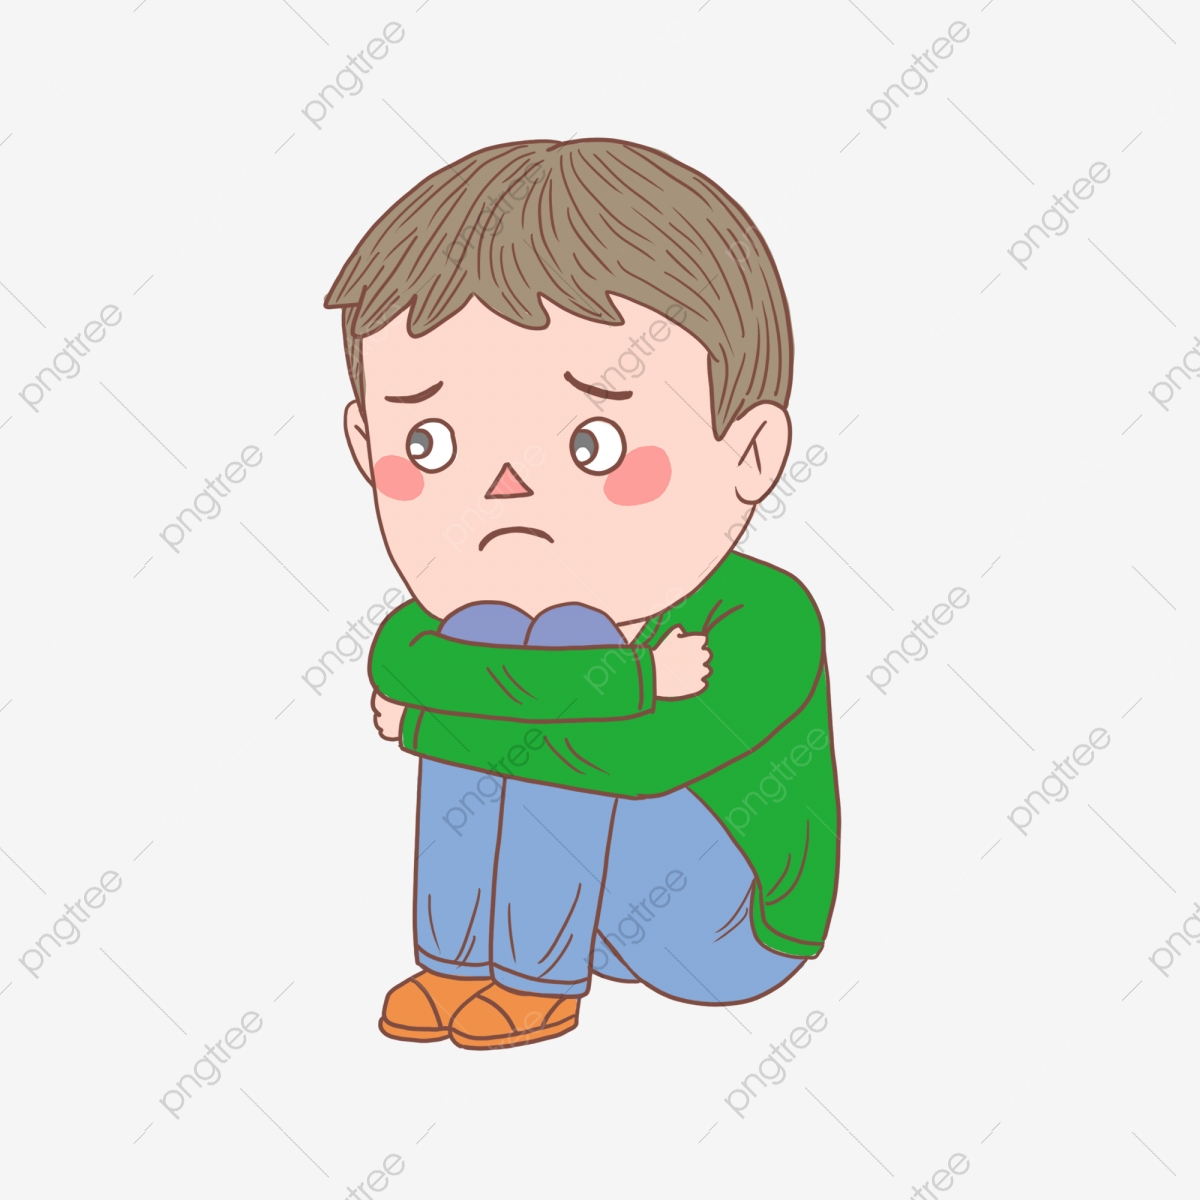 Depression clipart sad. Depressed people png